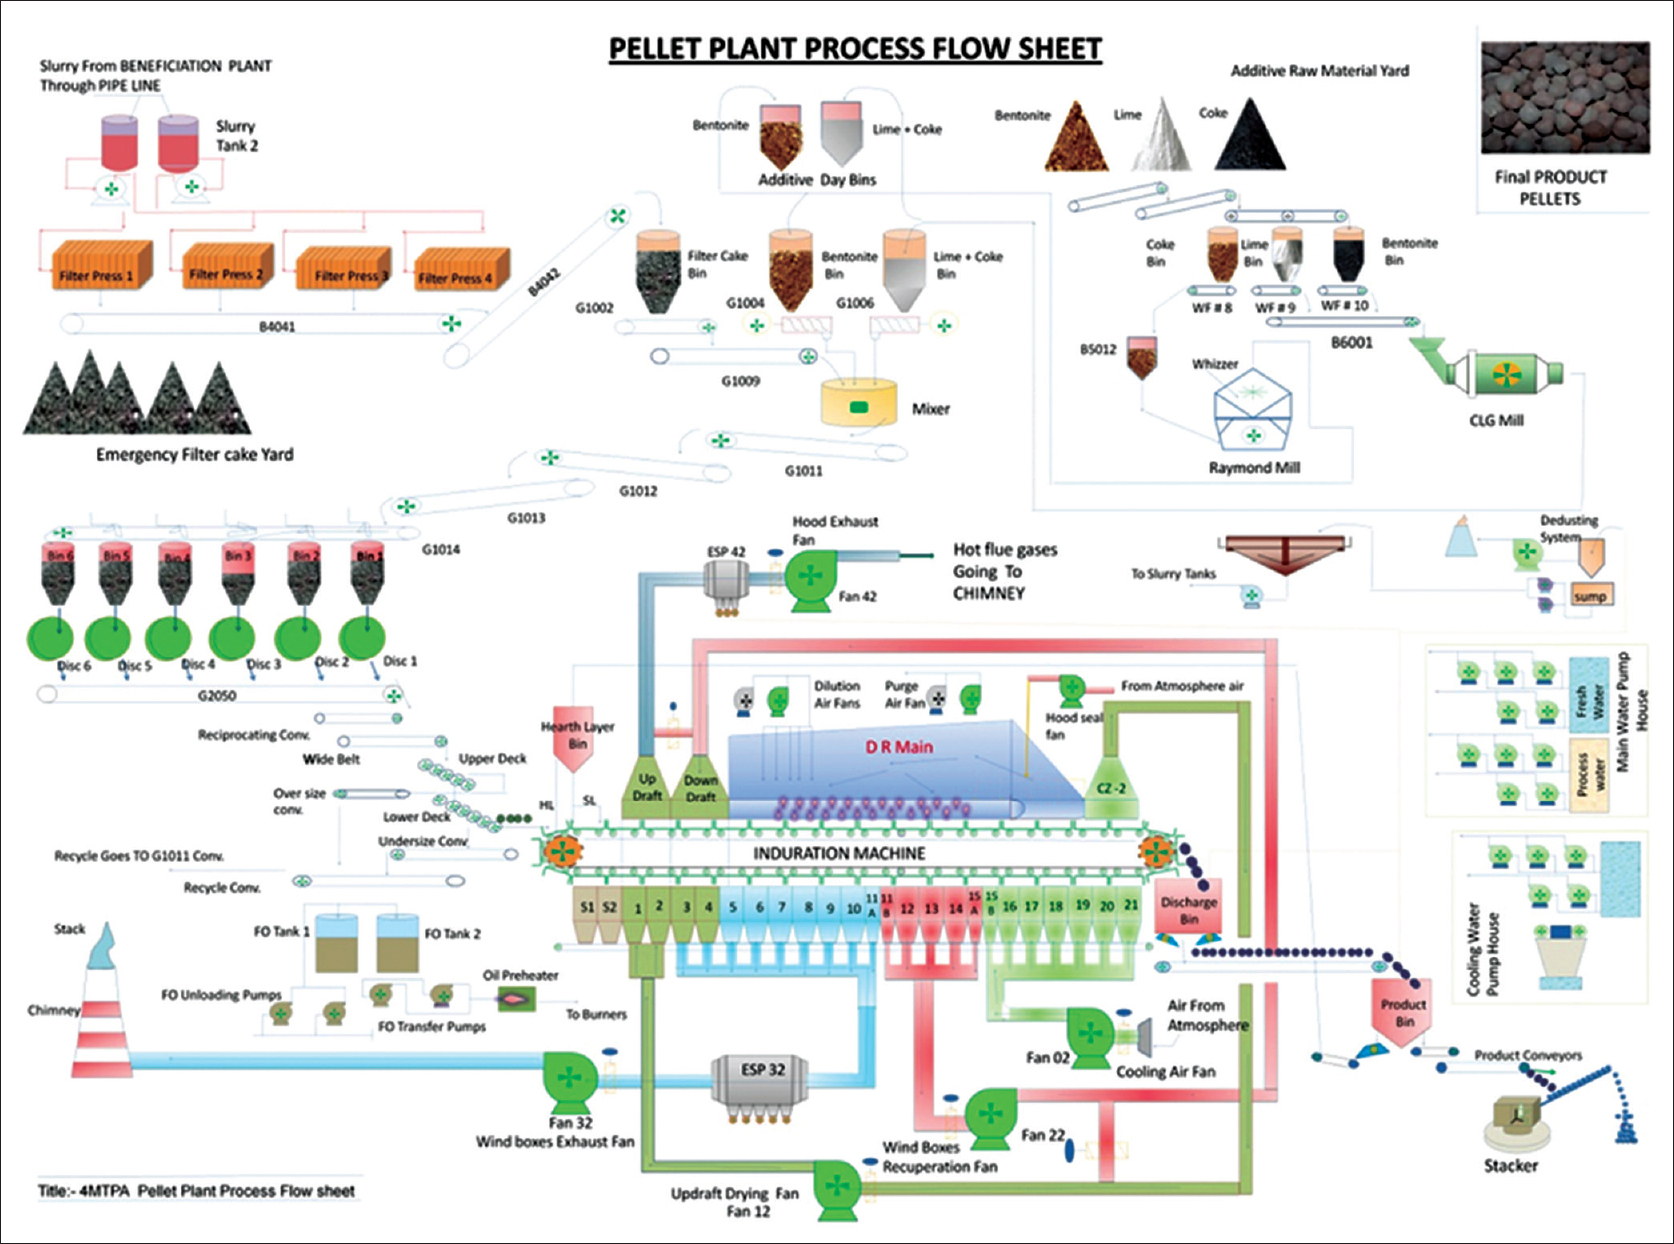 Pellet plant process flow chart gallery free any chart examples hazard identification risk assessment and control measures as an figure 5 process flow chart of iron nvjuhfo Gallery